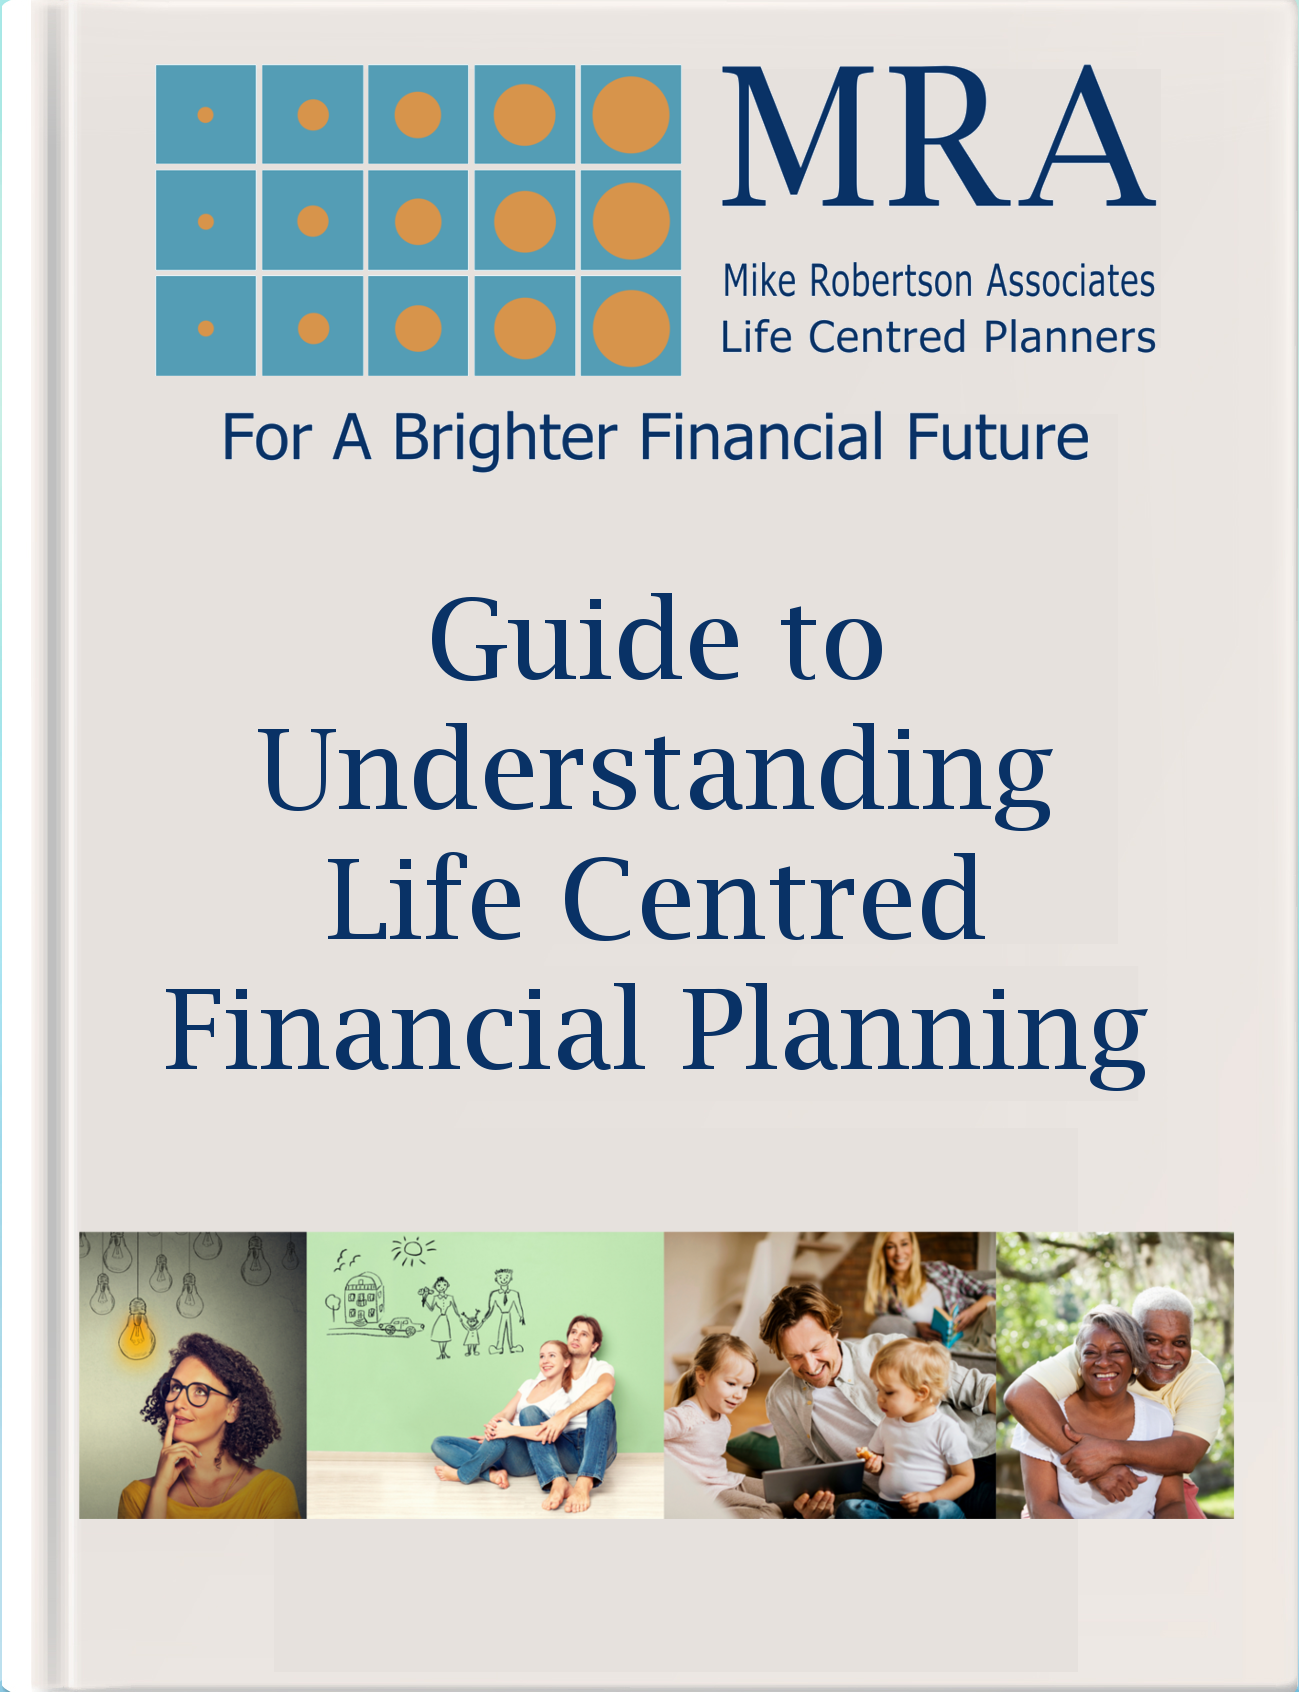 Download our Guide to Understanding Lifestyle Financial Planning